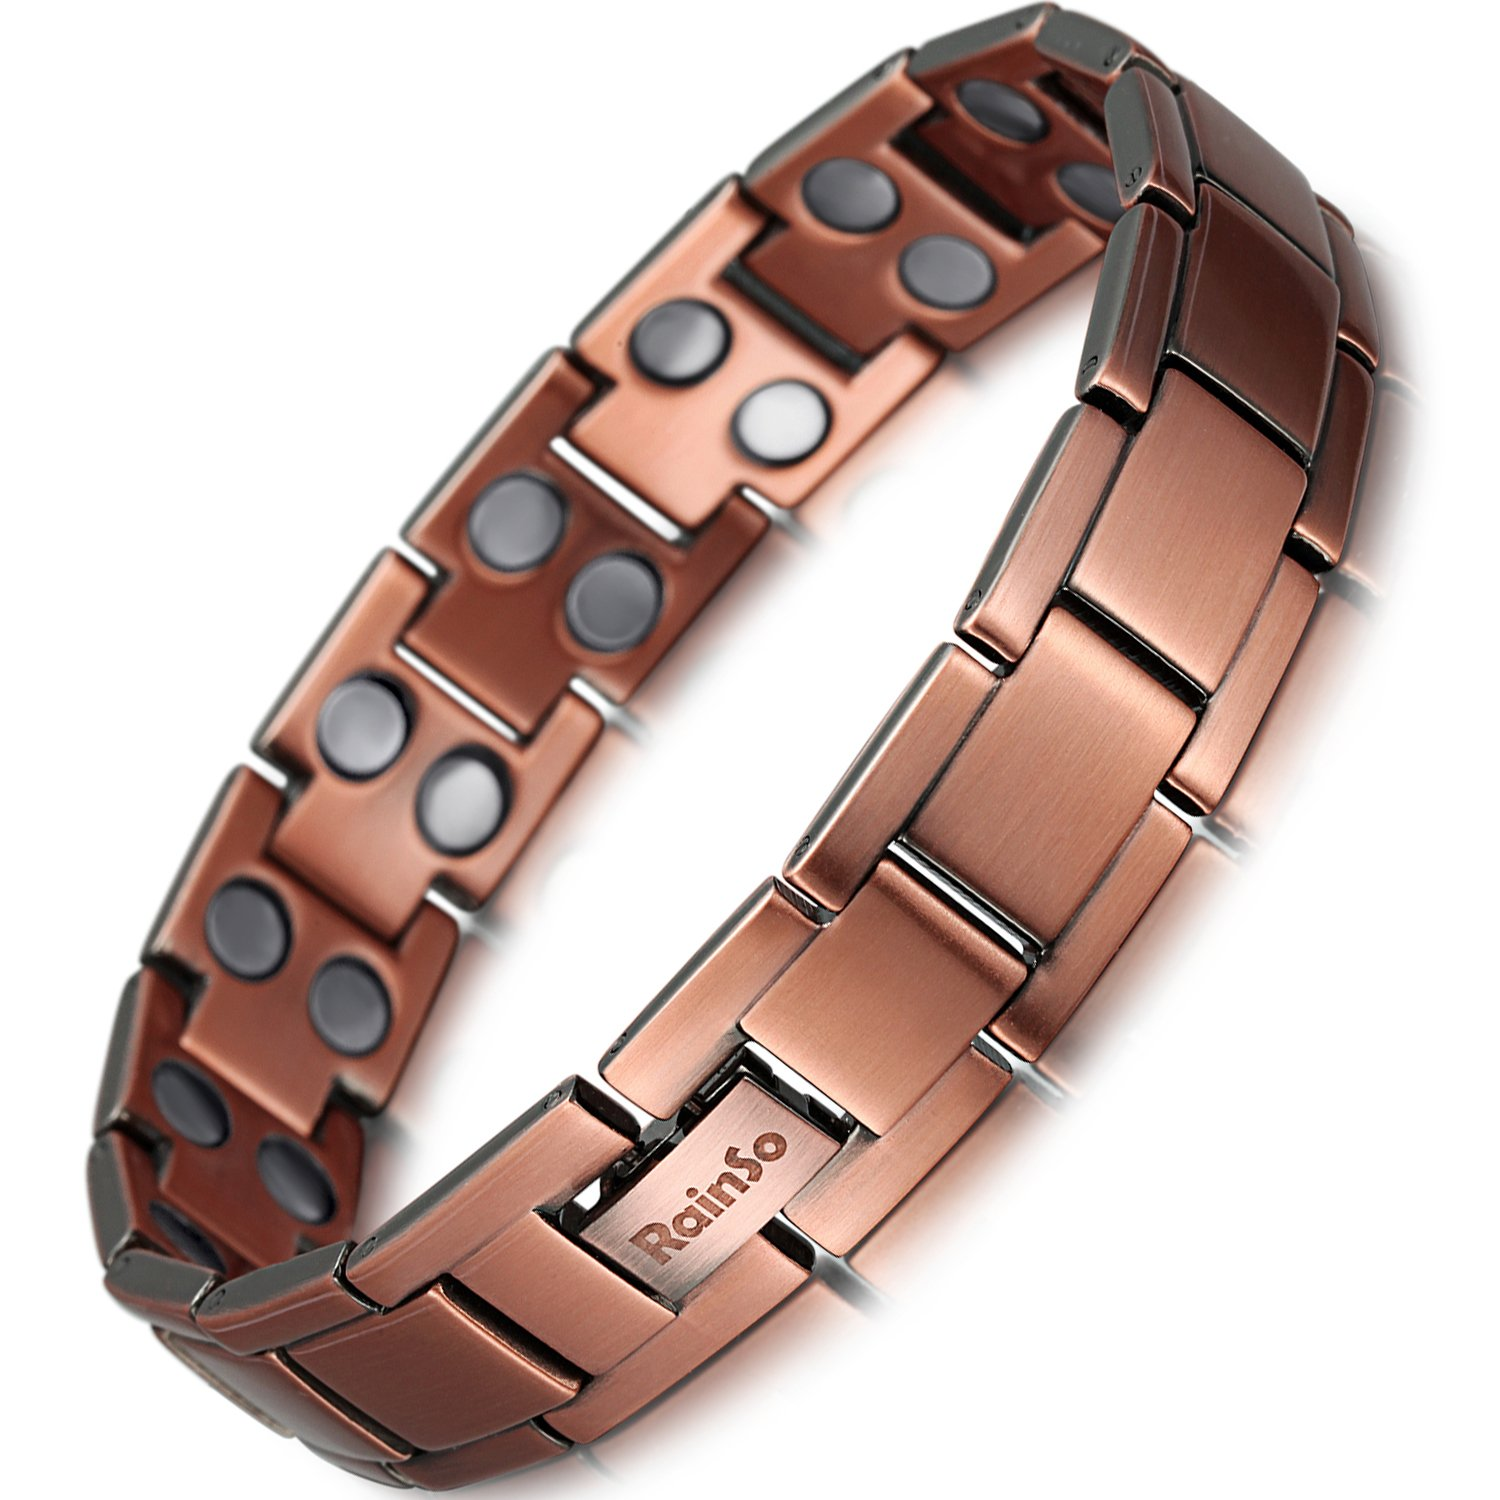 Rainso Mens Copper Double Row Magnetic Therapy Bracelets for Arthritis Wristband Adjustable OCB-147-US